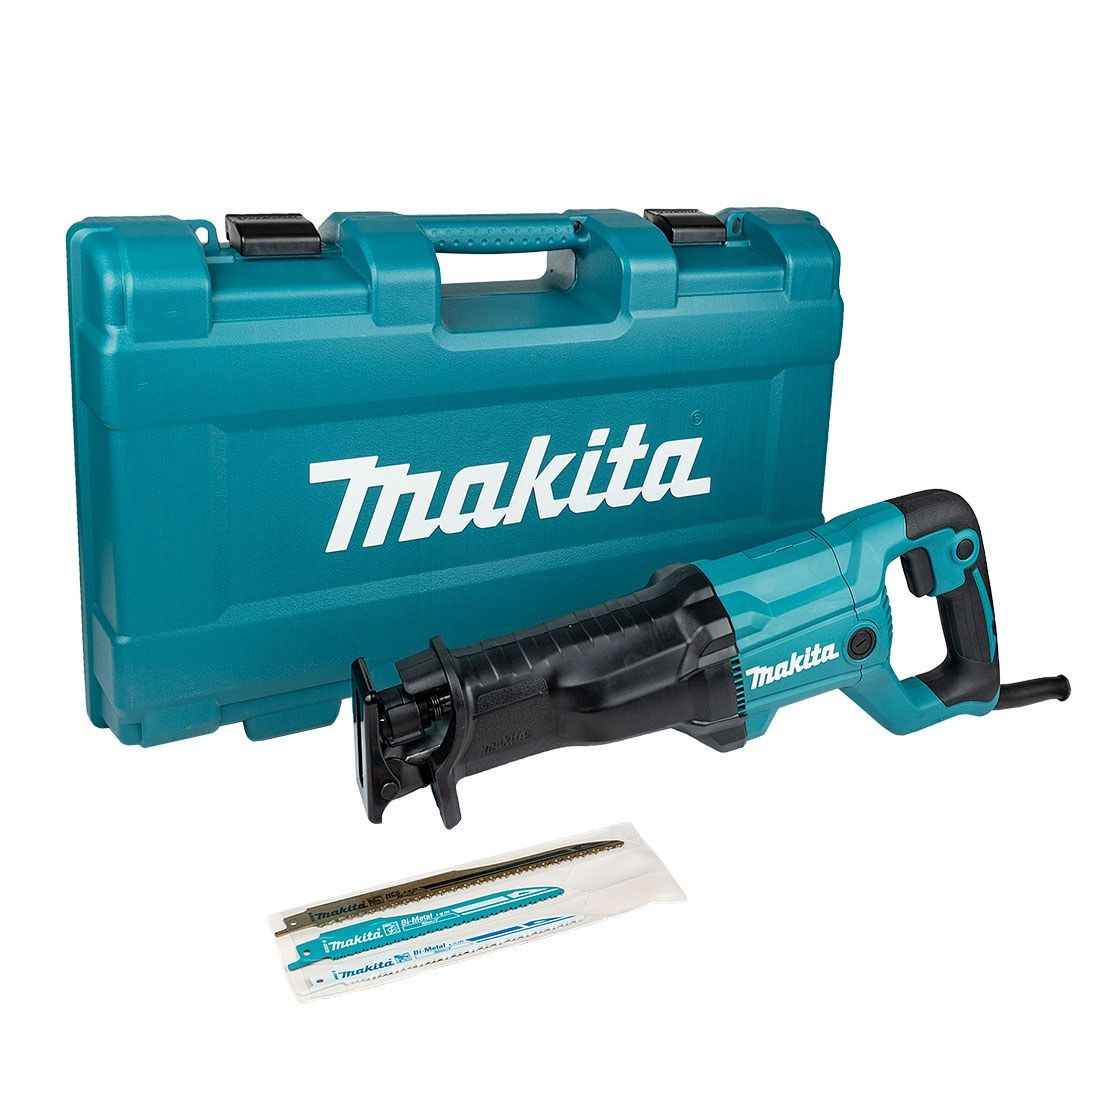 Makita Sabre Saw 110volt MAKJR3051TKL | This updated model provides increased durability, achieved by changing the slider holding mechanism. | toolforce.ie